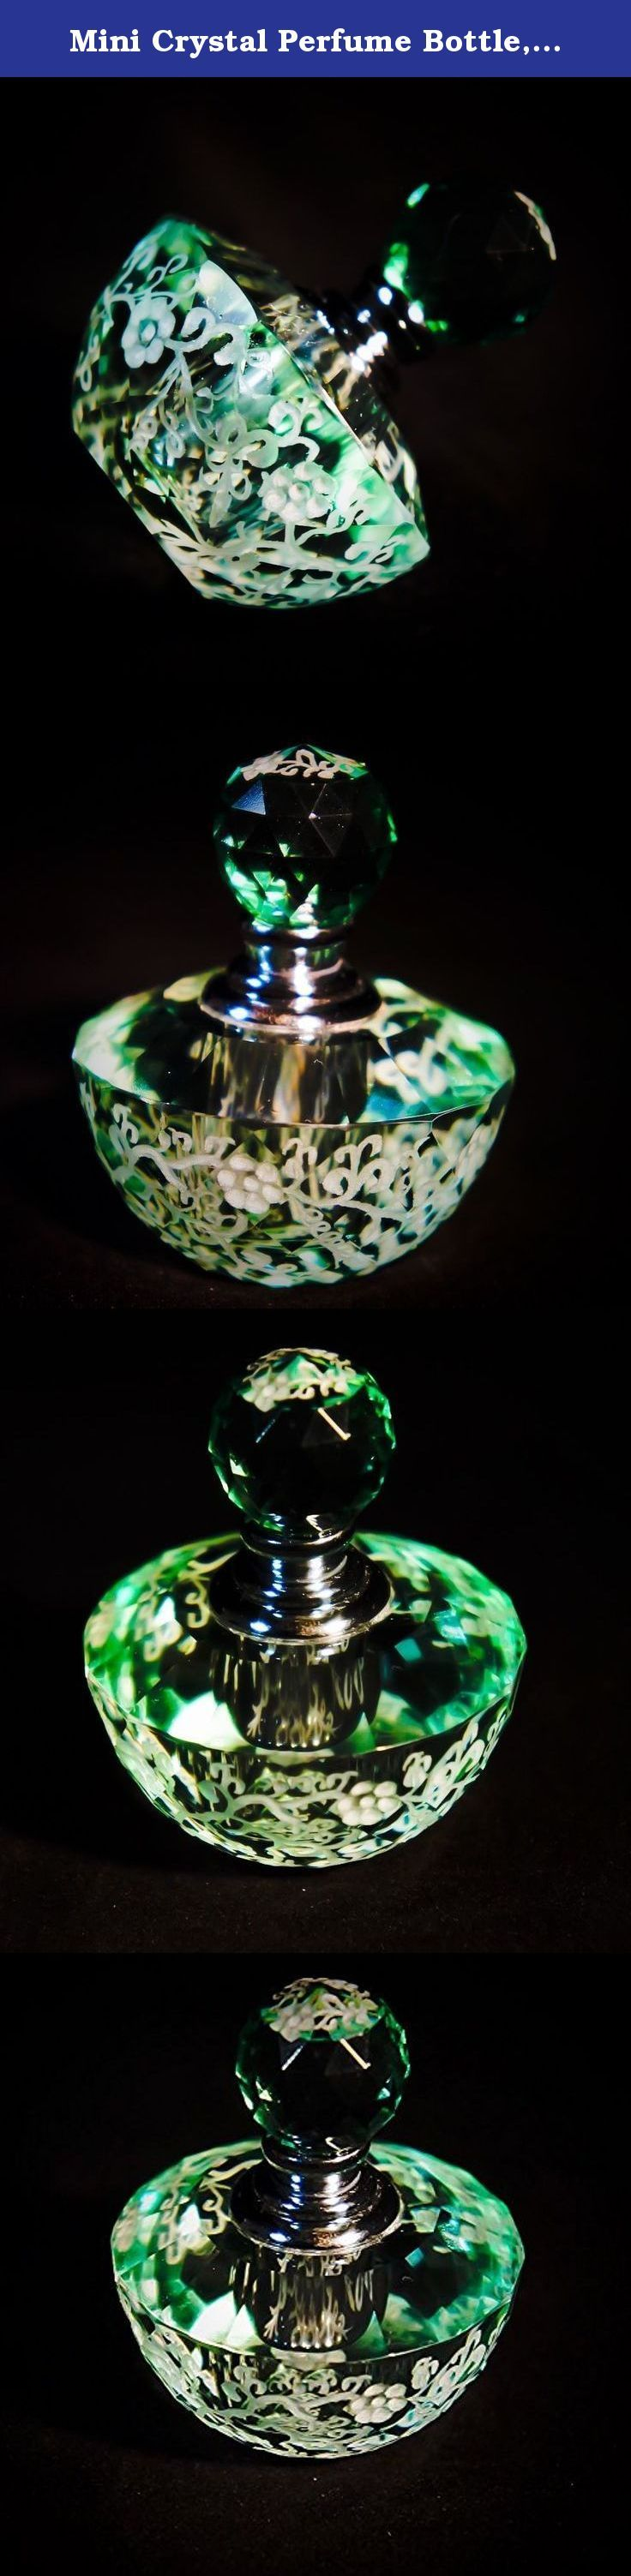 Mini Crystal Perfume Bottle, Flowers Series XVI. Hand engraved crystal perfume bottle makes the perfect gift for someone special in your life or you. The elegant crystal perfume bottle features flowers all round. Stunning piece! signed and numbered by artist. Ready to ship.